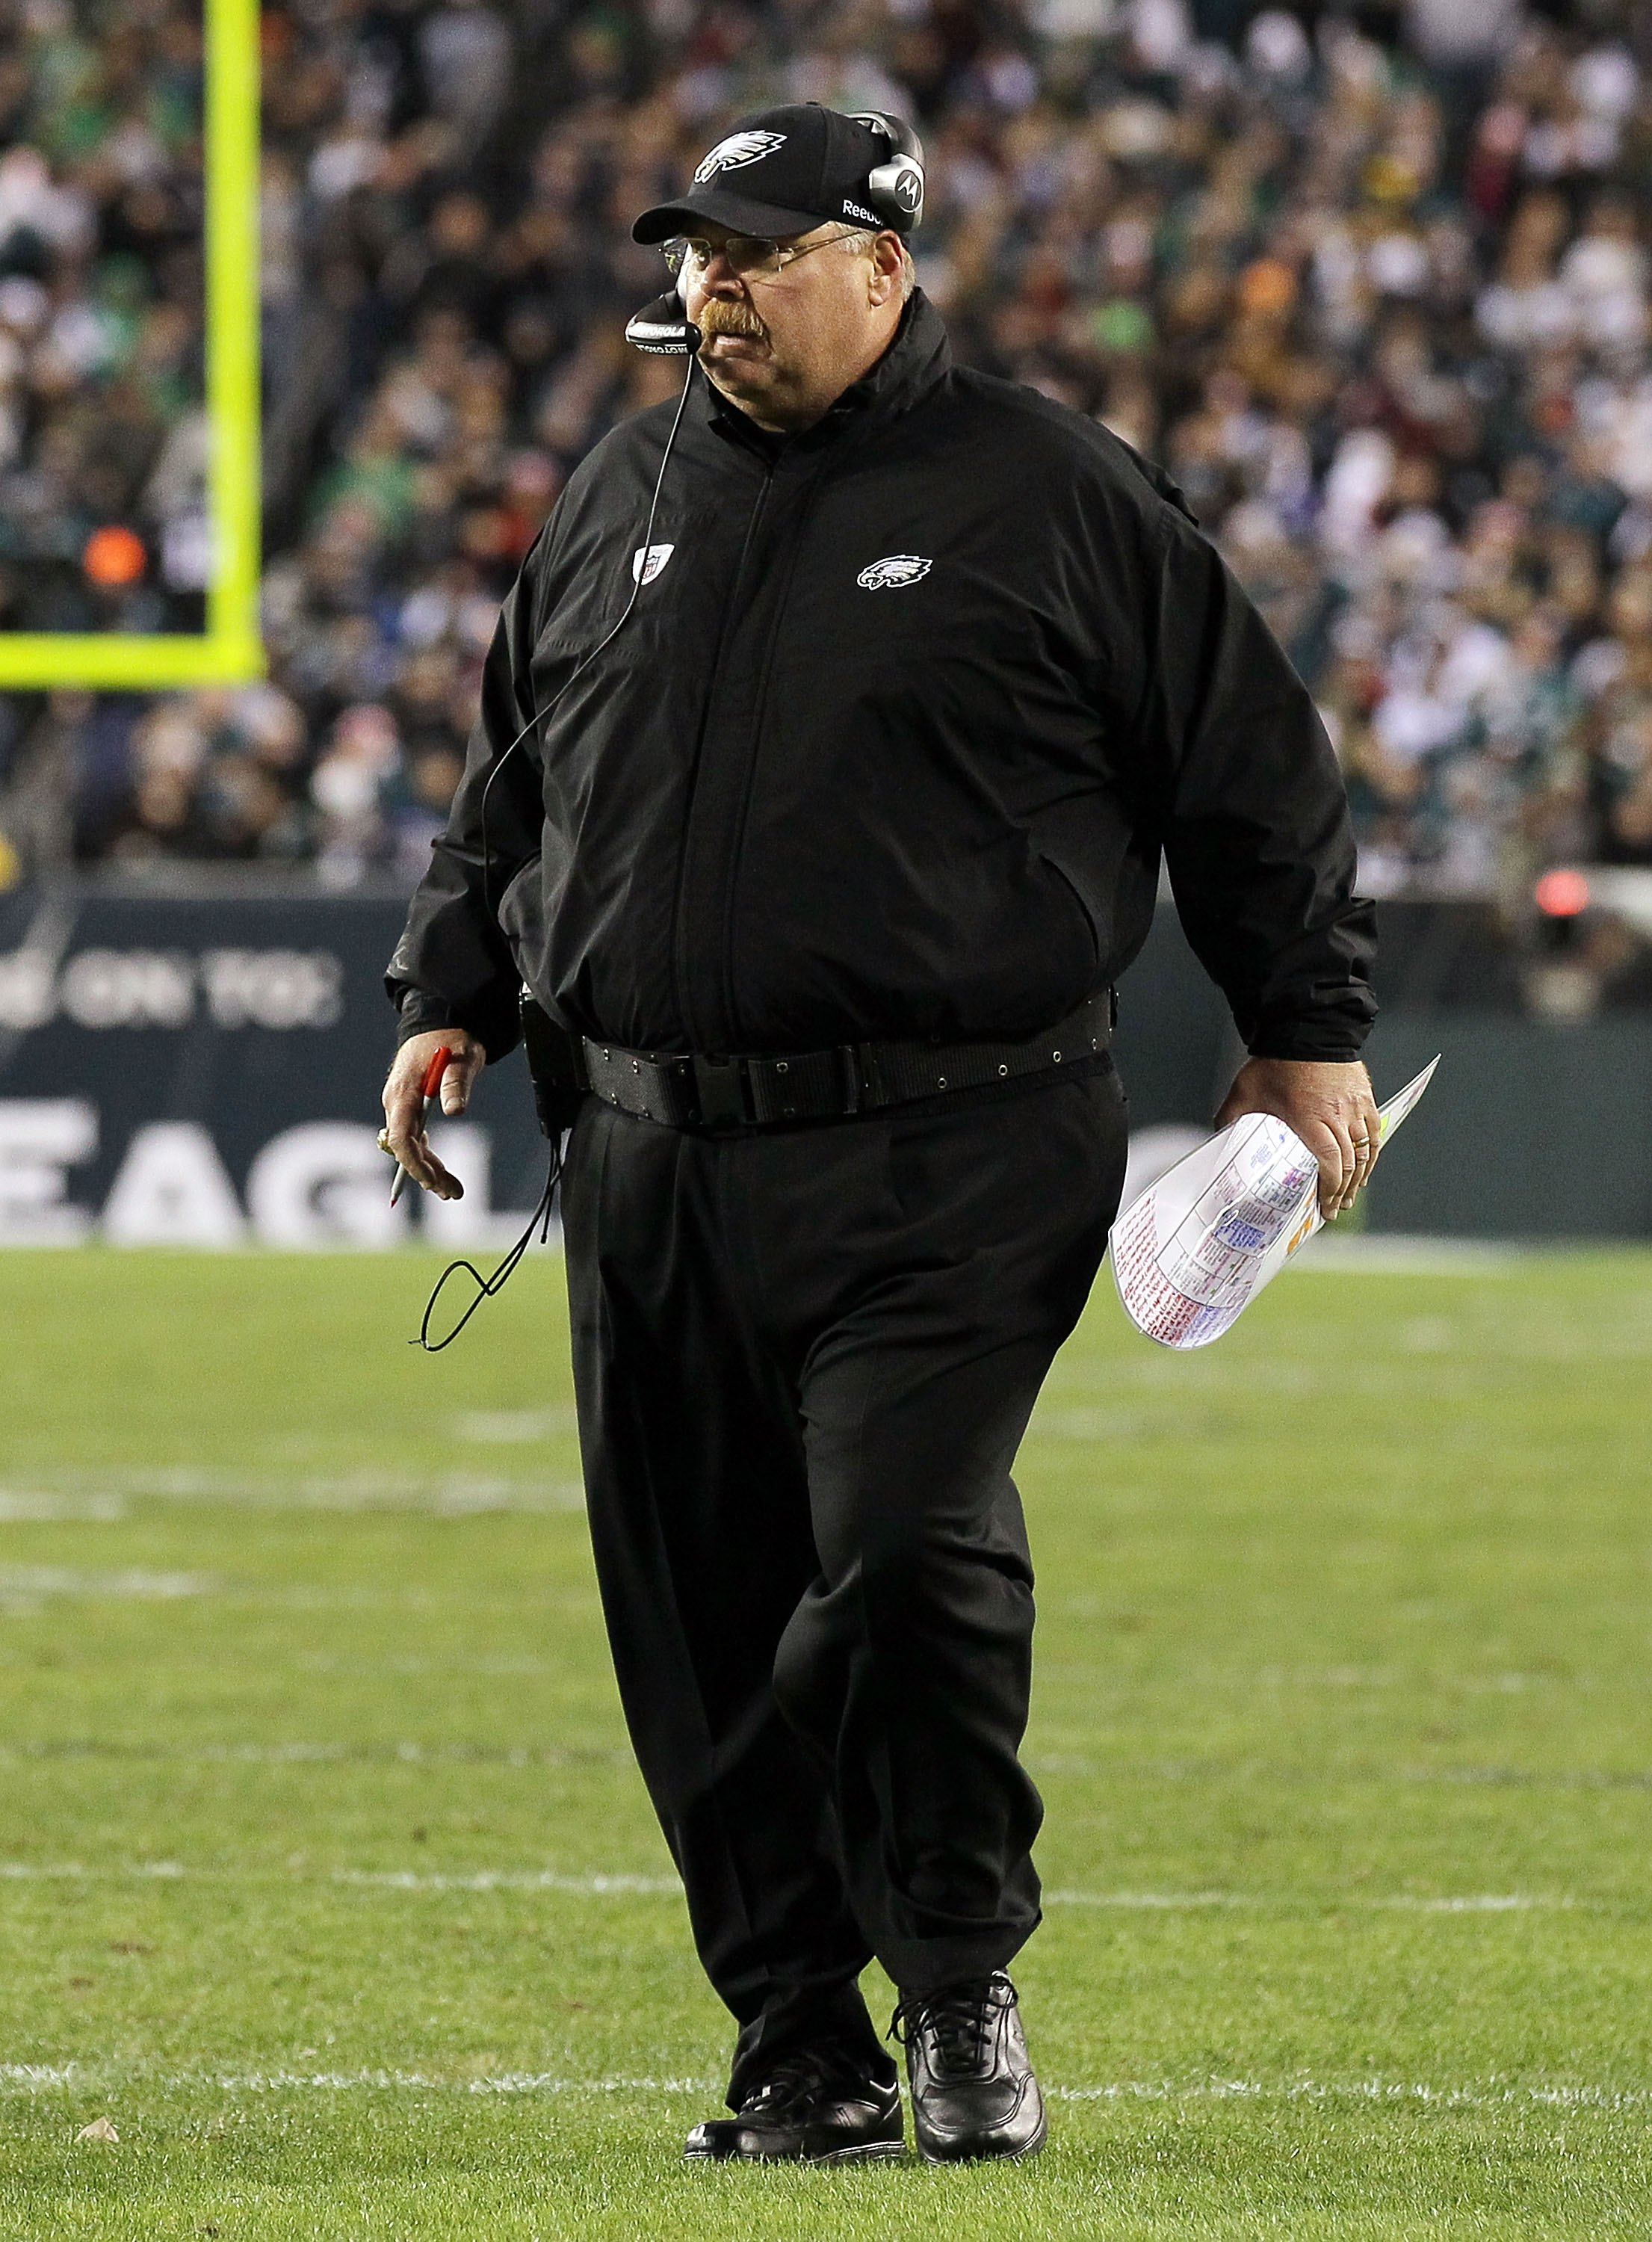 PHILADELPHIA - NOVEMBER 07:  Head coach Andy Reid of the Philadelphia Eagles against the Indianapolis Colts on November 7, 2010 at Lincoln Financial Field in Philadelphia, Pennsylvania.  (Photo by Jim McIsaac/Getty Images)